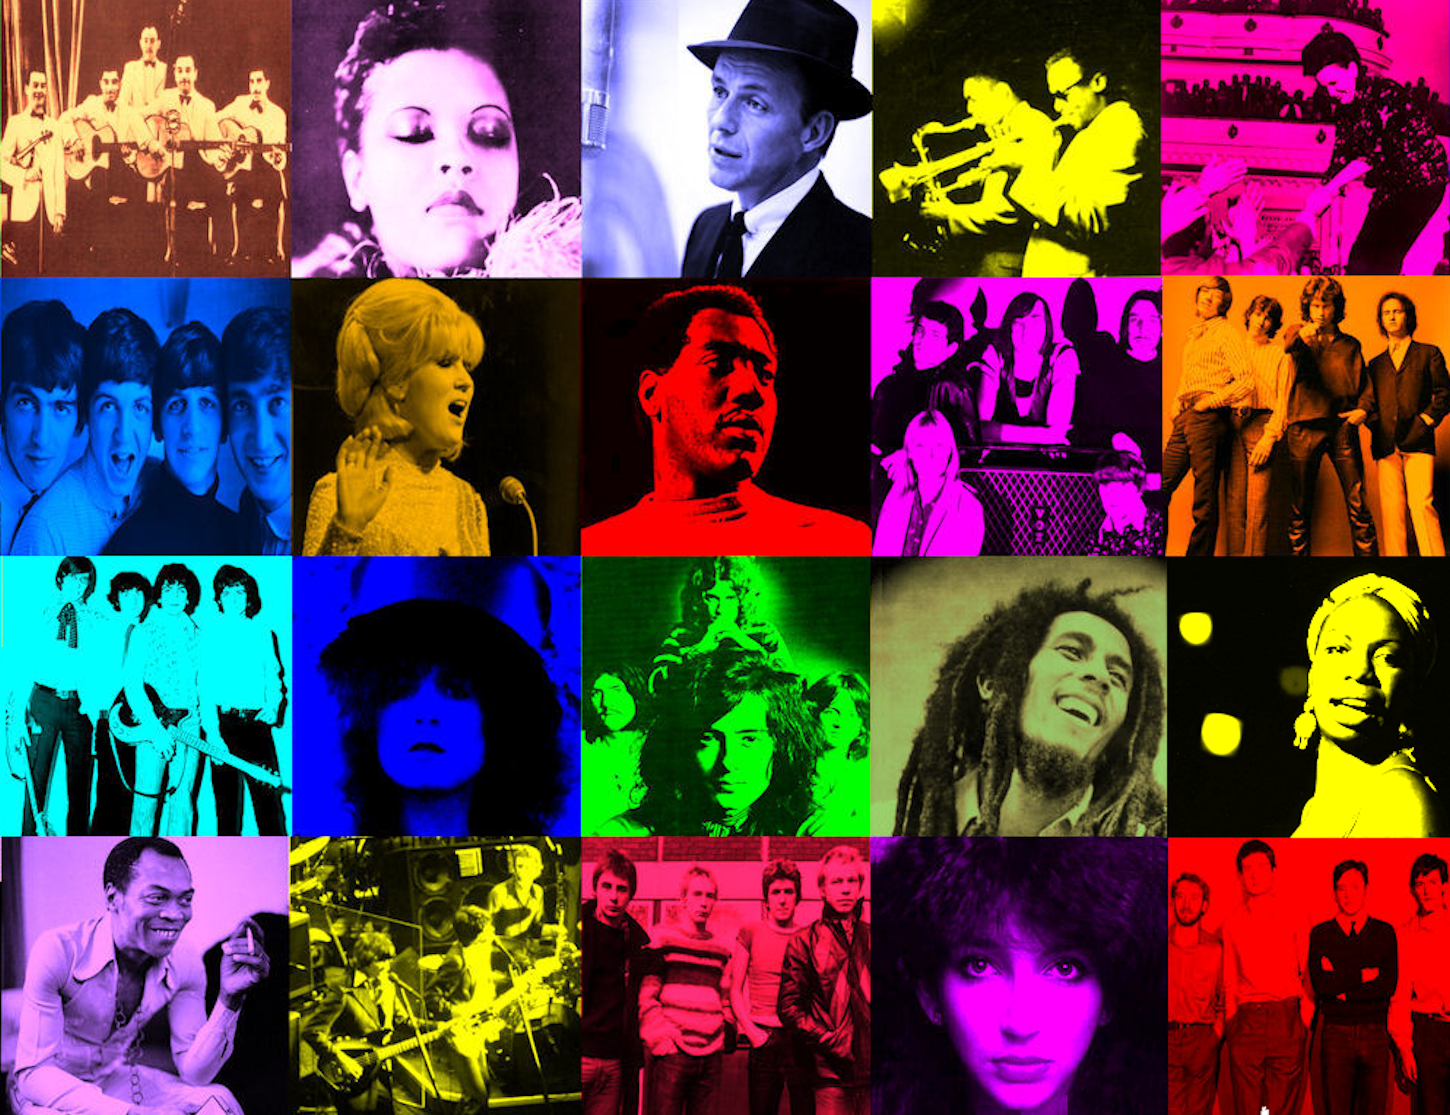 You Won't See Me: 20 Acts I Wish I'd Seen (1920s-1980) featuring Billie Holiday, The Sex Pistols, Fela Kuti, Frank Sinatra, The Beatles and more, Cube of Artists, mylifeinconcert.com,Episode 11, Concert Number 20A